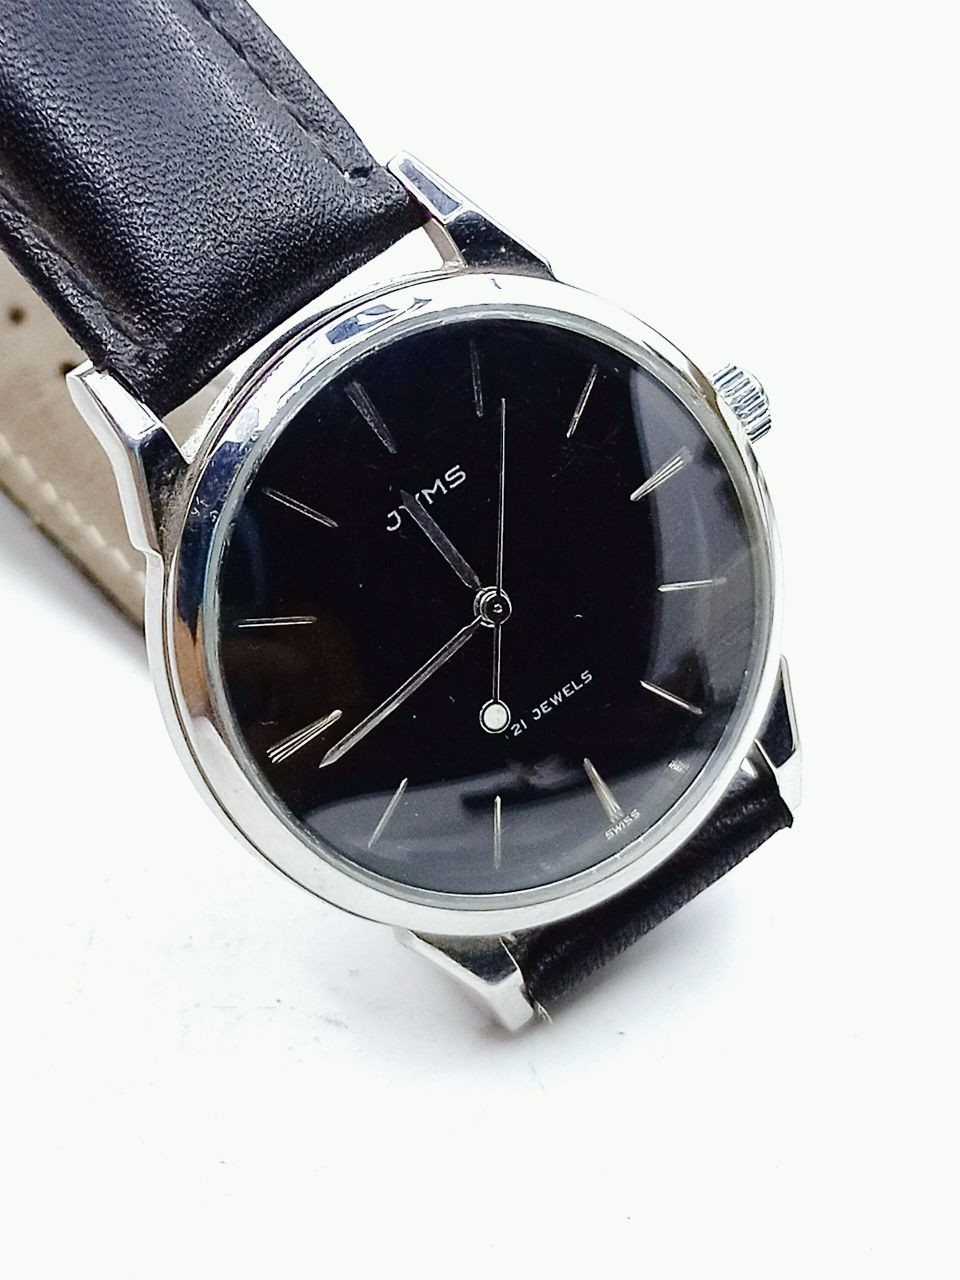 JYMS LIMITED EDITION WATCH